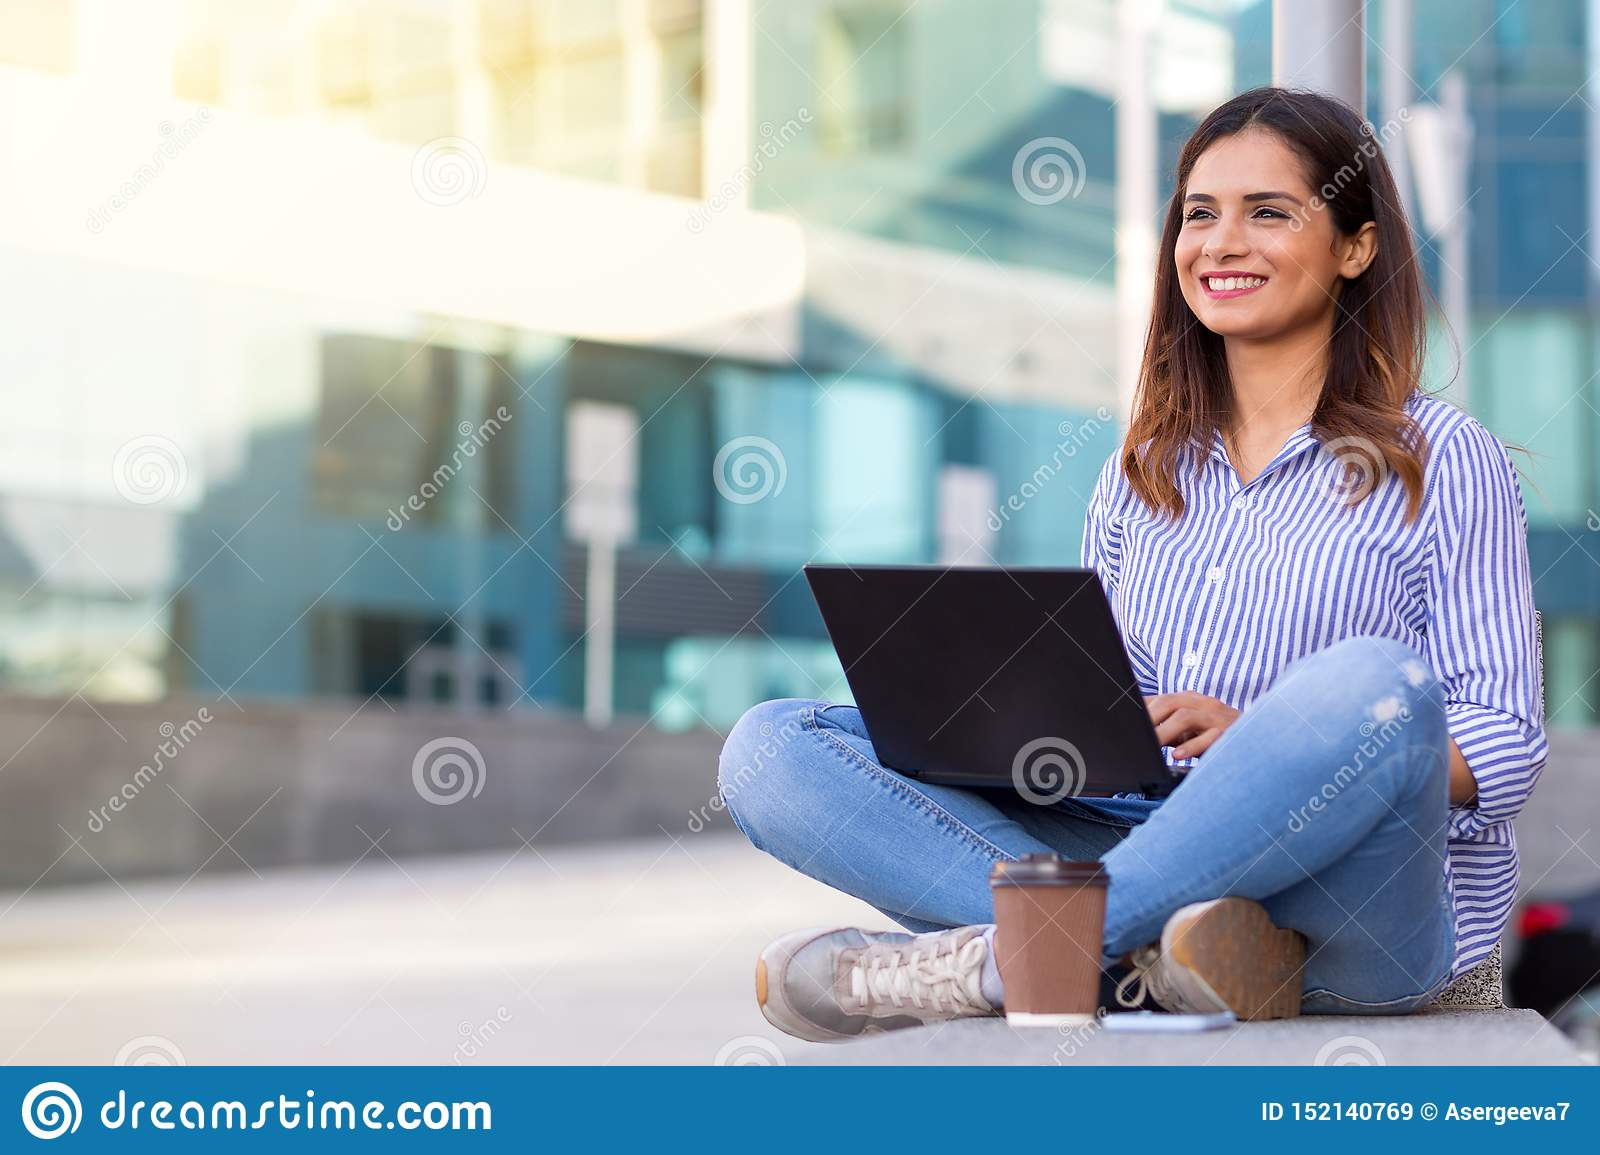 Young smiling woman using computer and drinking coffee outdoors with copy space